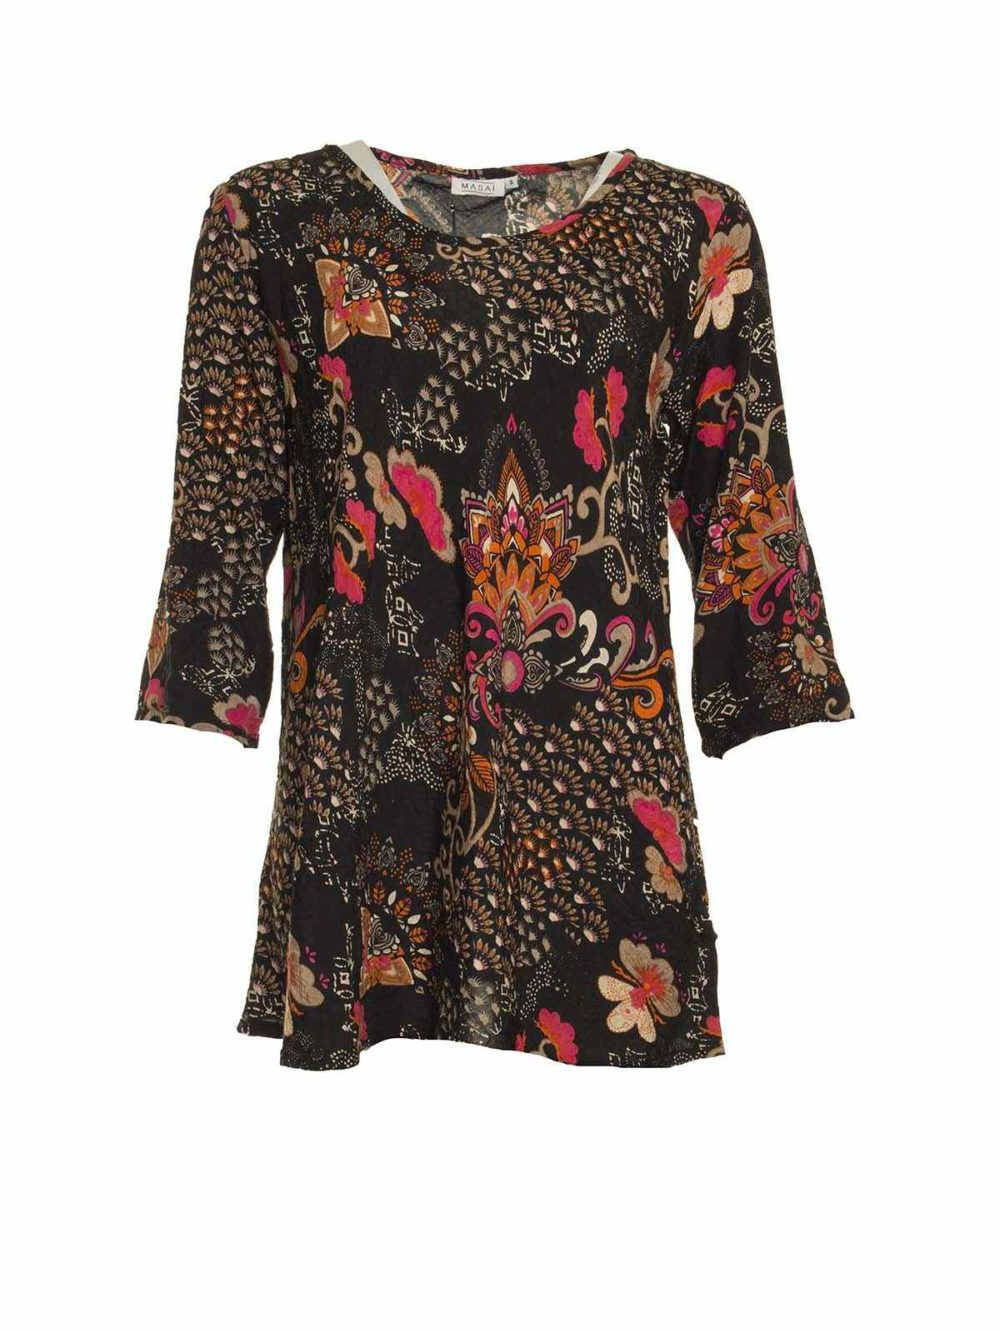 Kiwi Top Masai Clothing Katie Kerr Women's Clothing